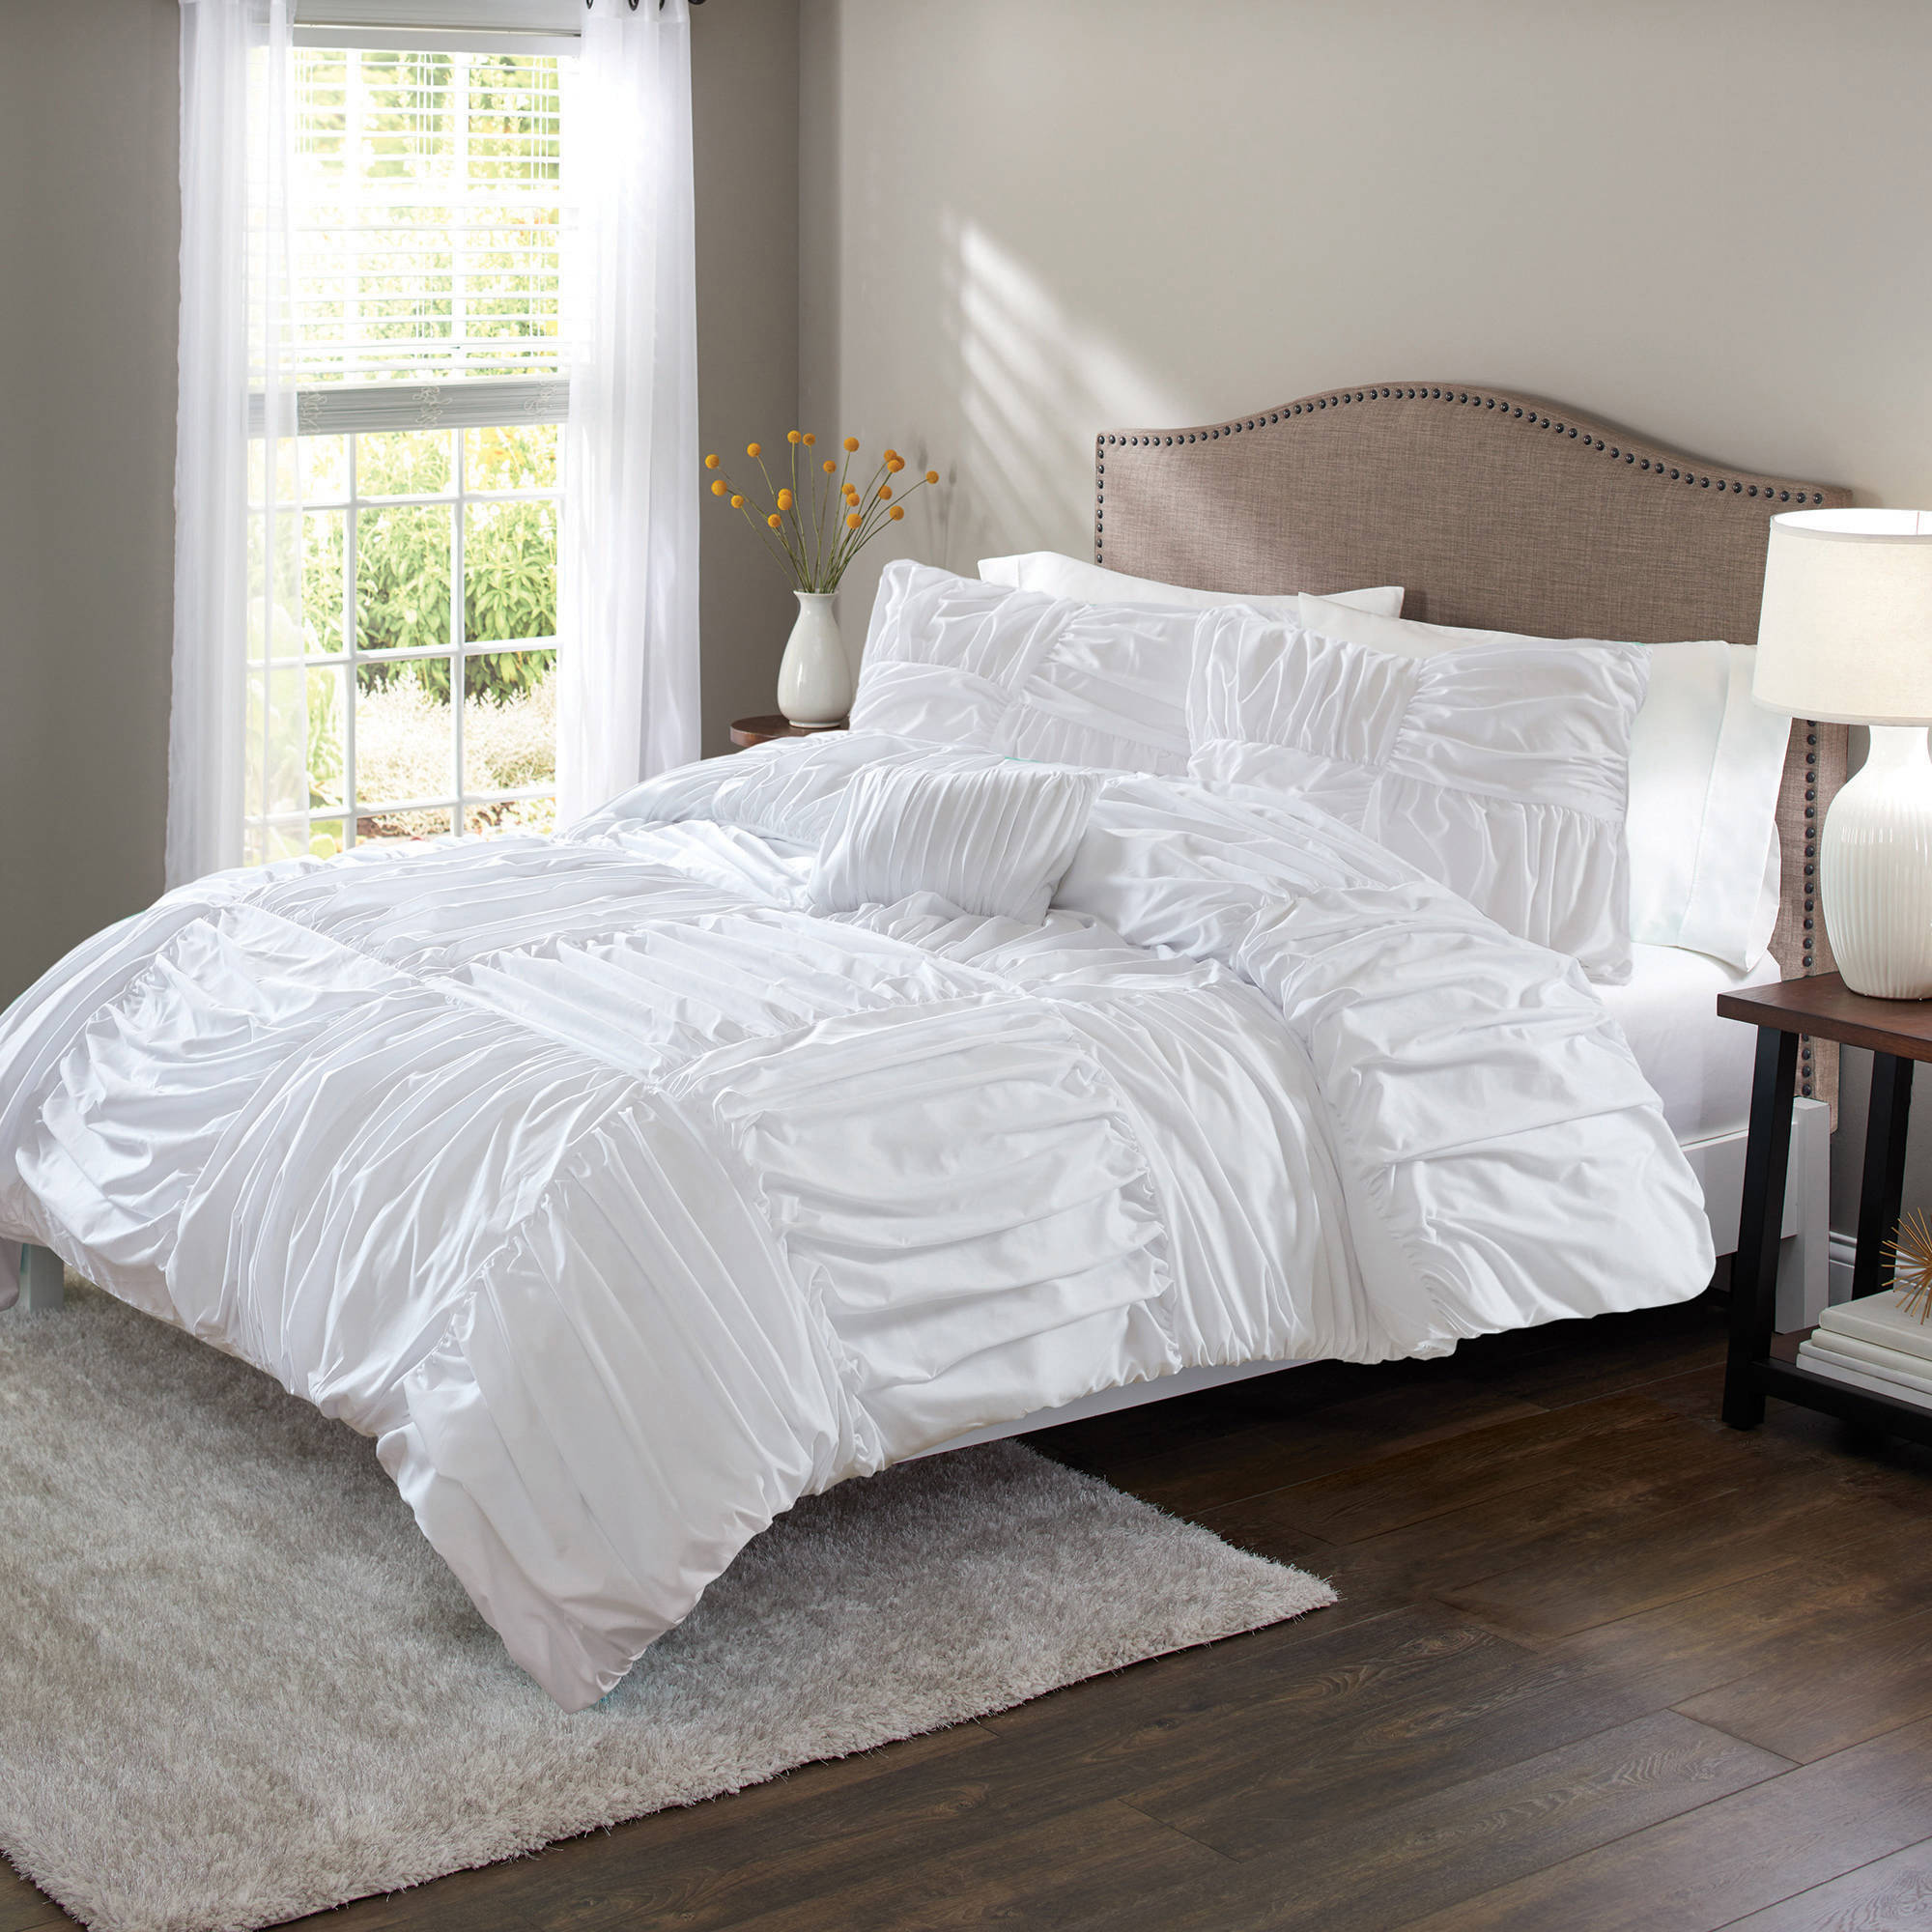 BHG Basketweave Ruched Duvet Set